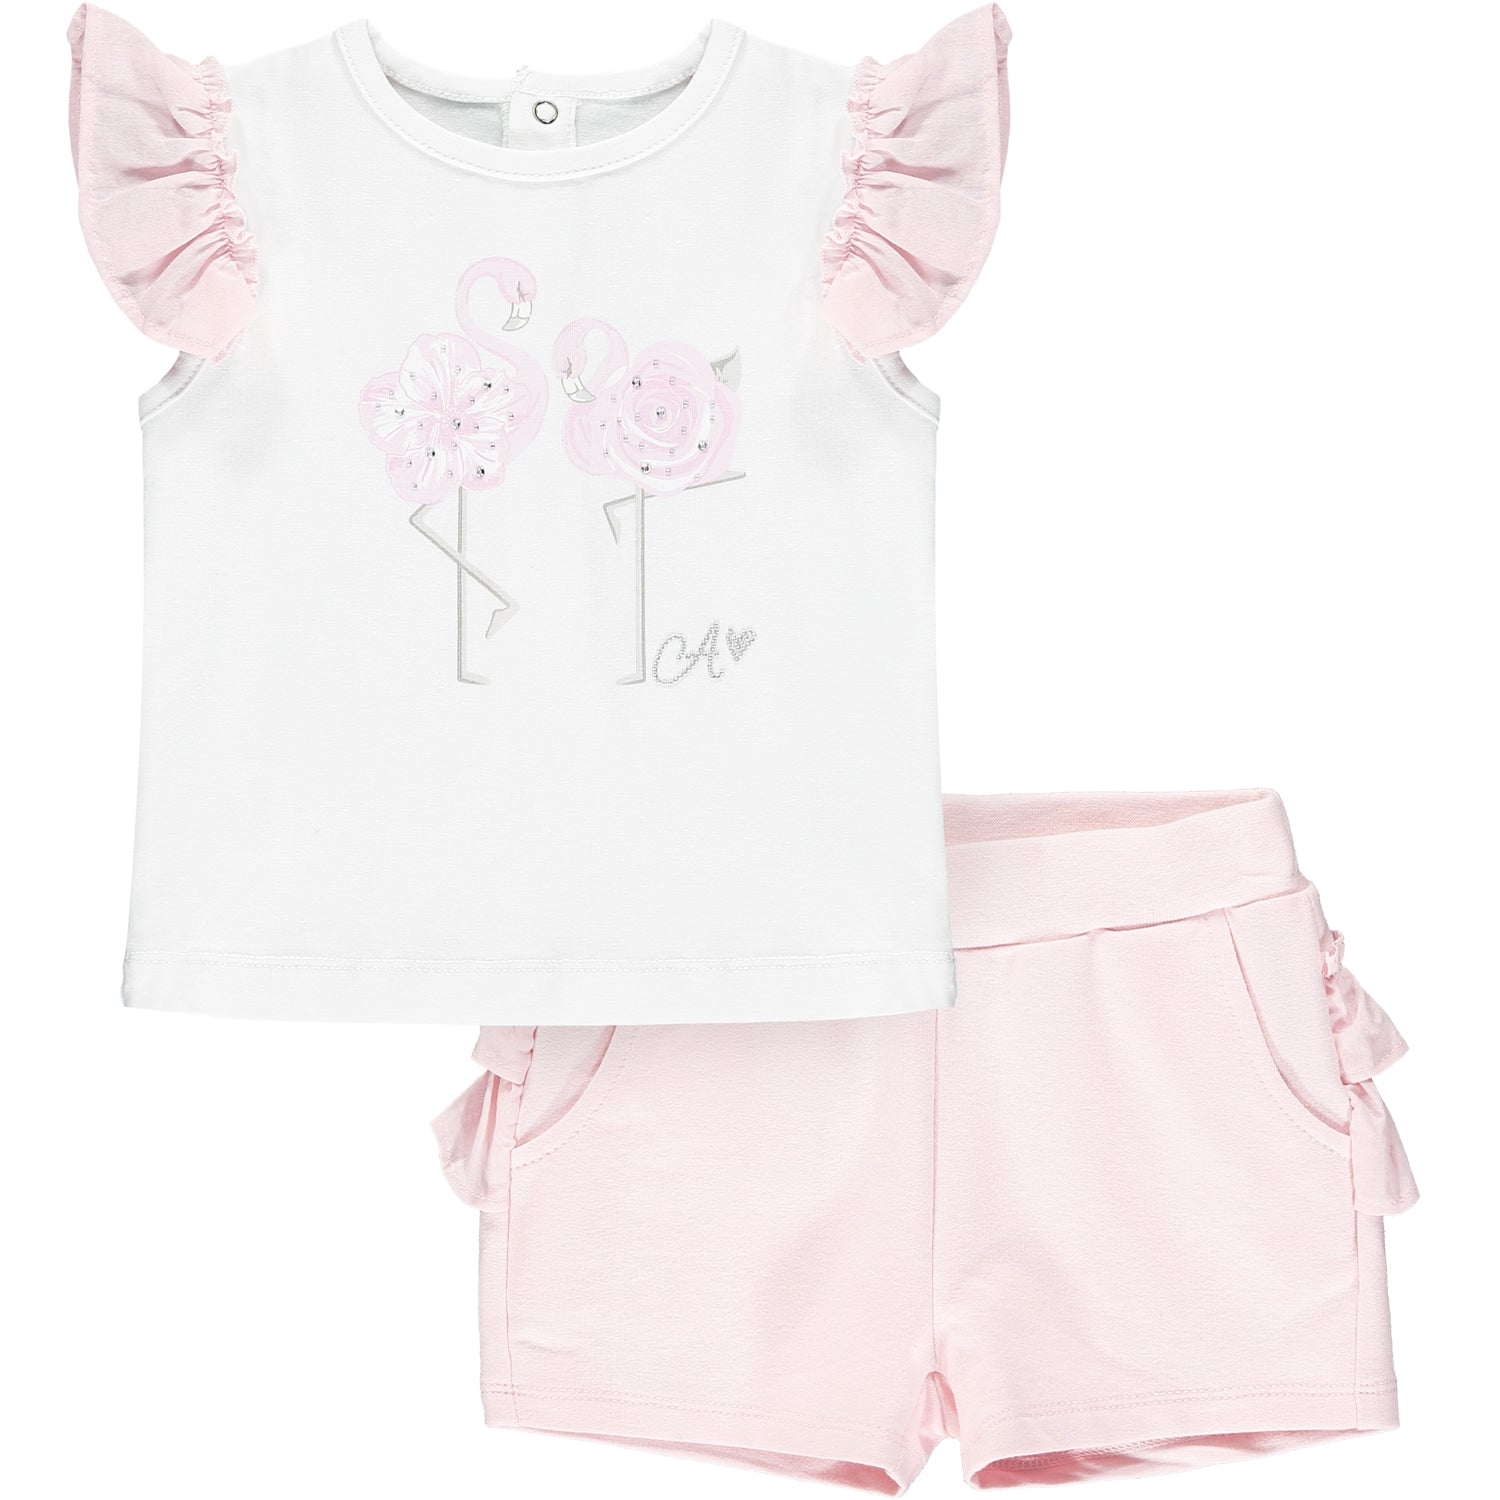 Little A LS21504 Jagger Bright White Flamingo Shorts Set